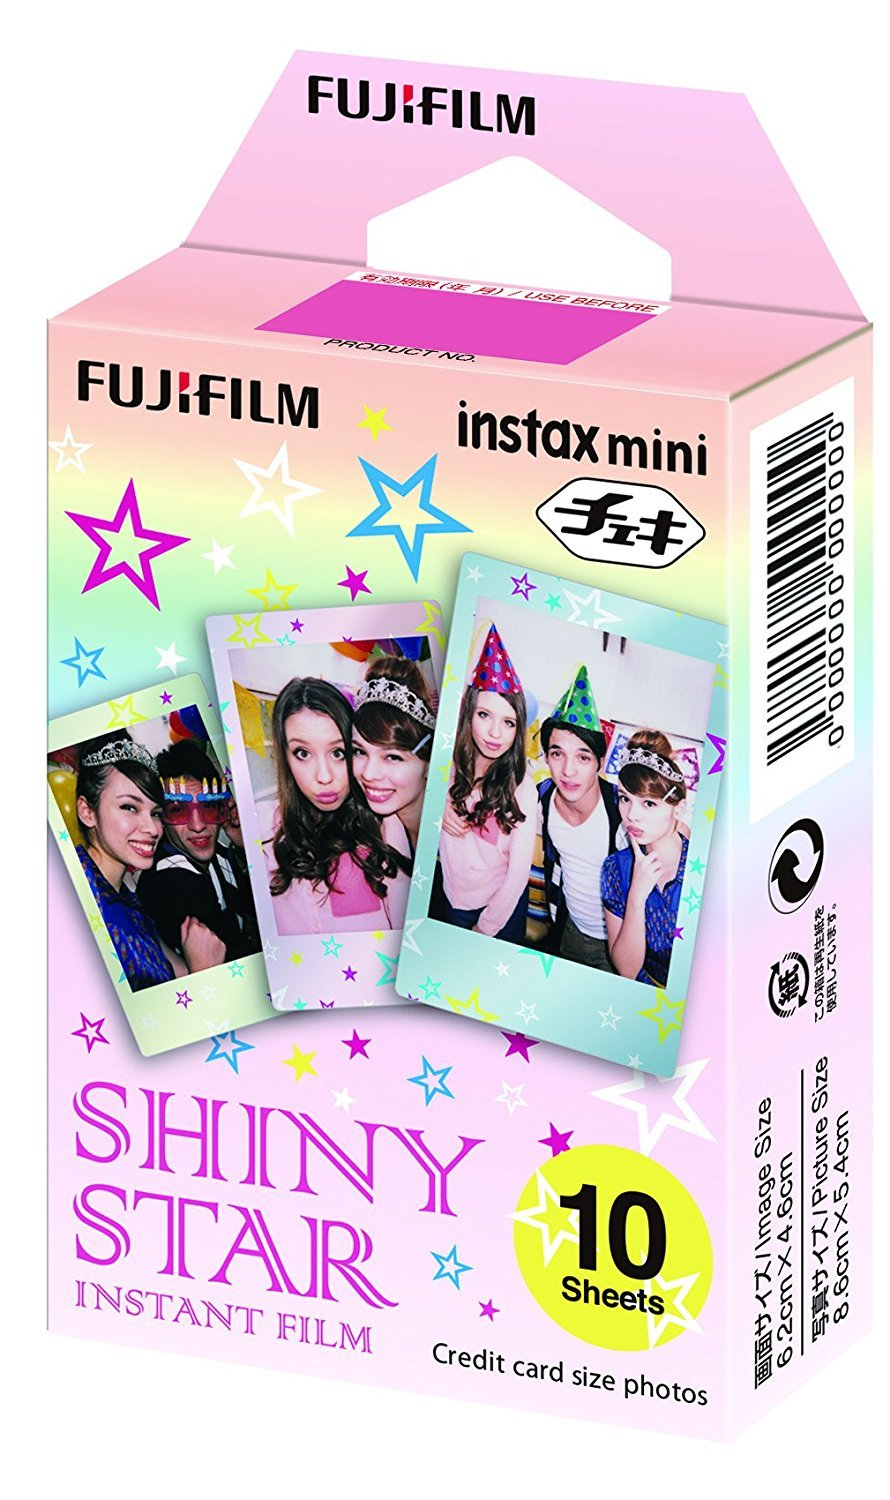 Fujifilm Instax Mini Instant Film 30 Count Value Kit For Film for Fuji 7s, 8, 9, 25, 50s,70, 90 Instant Camera, Share SP1, SP2 Printer (3 Pack, Shiny Star)